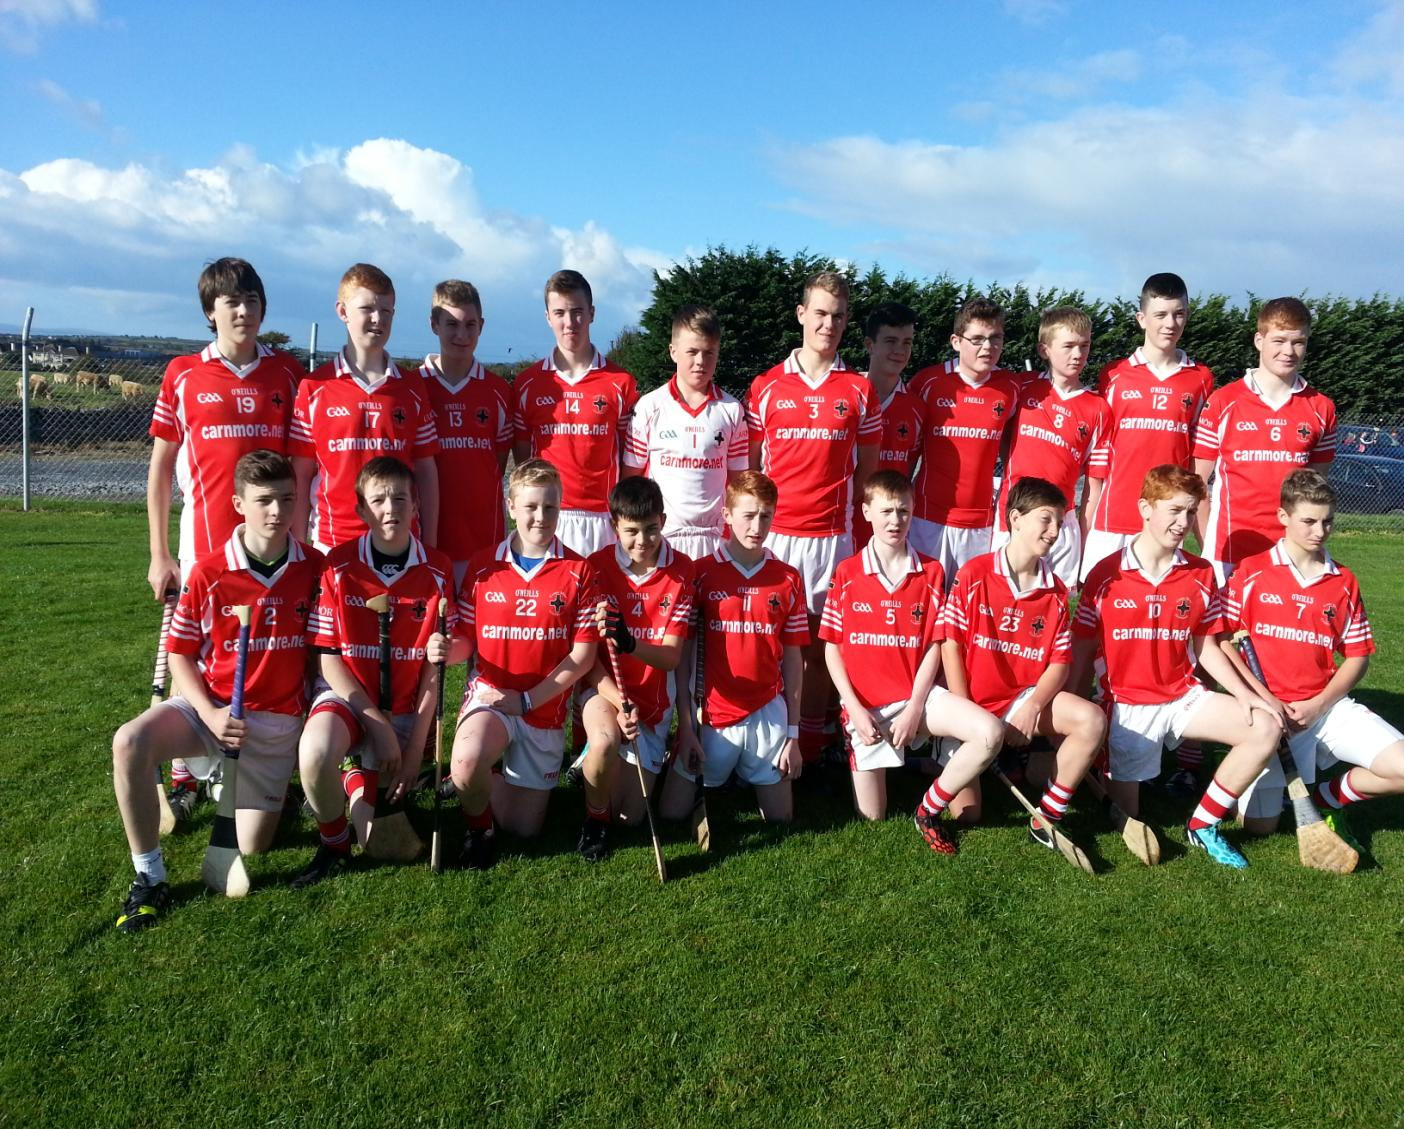 Carnmore Under 15 B1 Championship Panel 2014—Back Row: Darren Grealish, Colm Healy, Keith Field, Tomas Cogley, Conor Flaherty, Brian Fox, Daniel Prior, Conor Harte, Mikie Cullina, Robert Healy. Front Row: Tom Hopwood, Shane Lawless, Harry Bradshaw, Eoin Clarke, Shane O'Gorman, Aodhan Fox, Conor Finnerty, Harry O'Gorman, Cian Heery